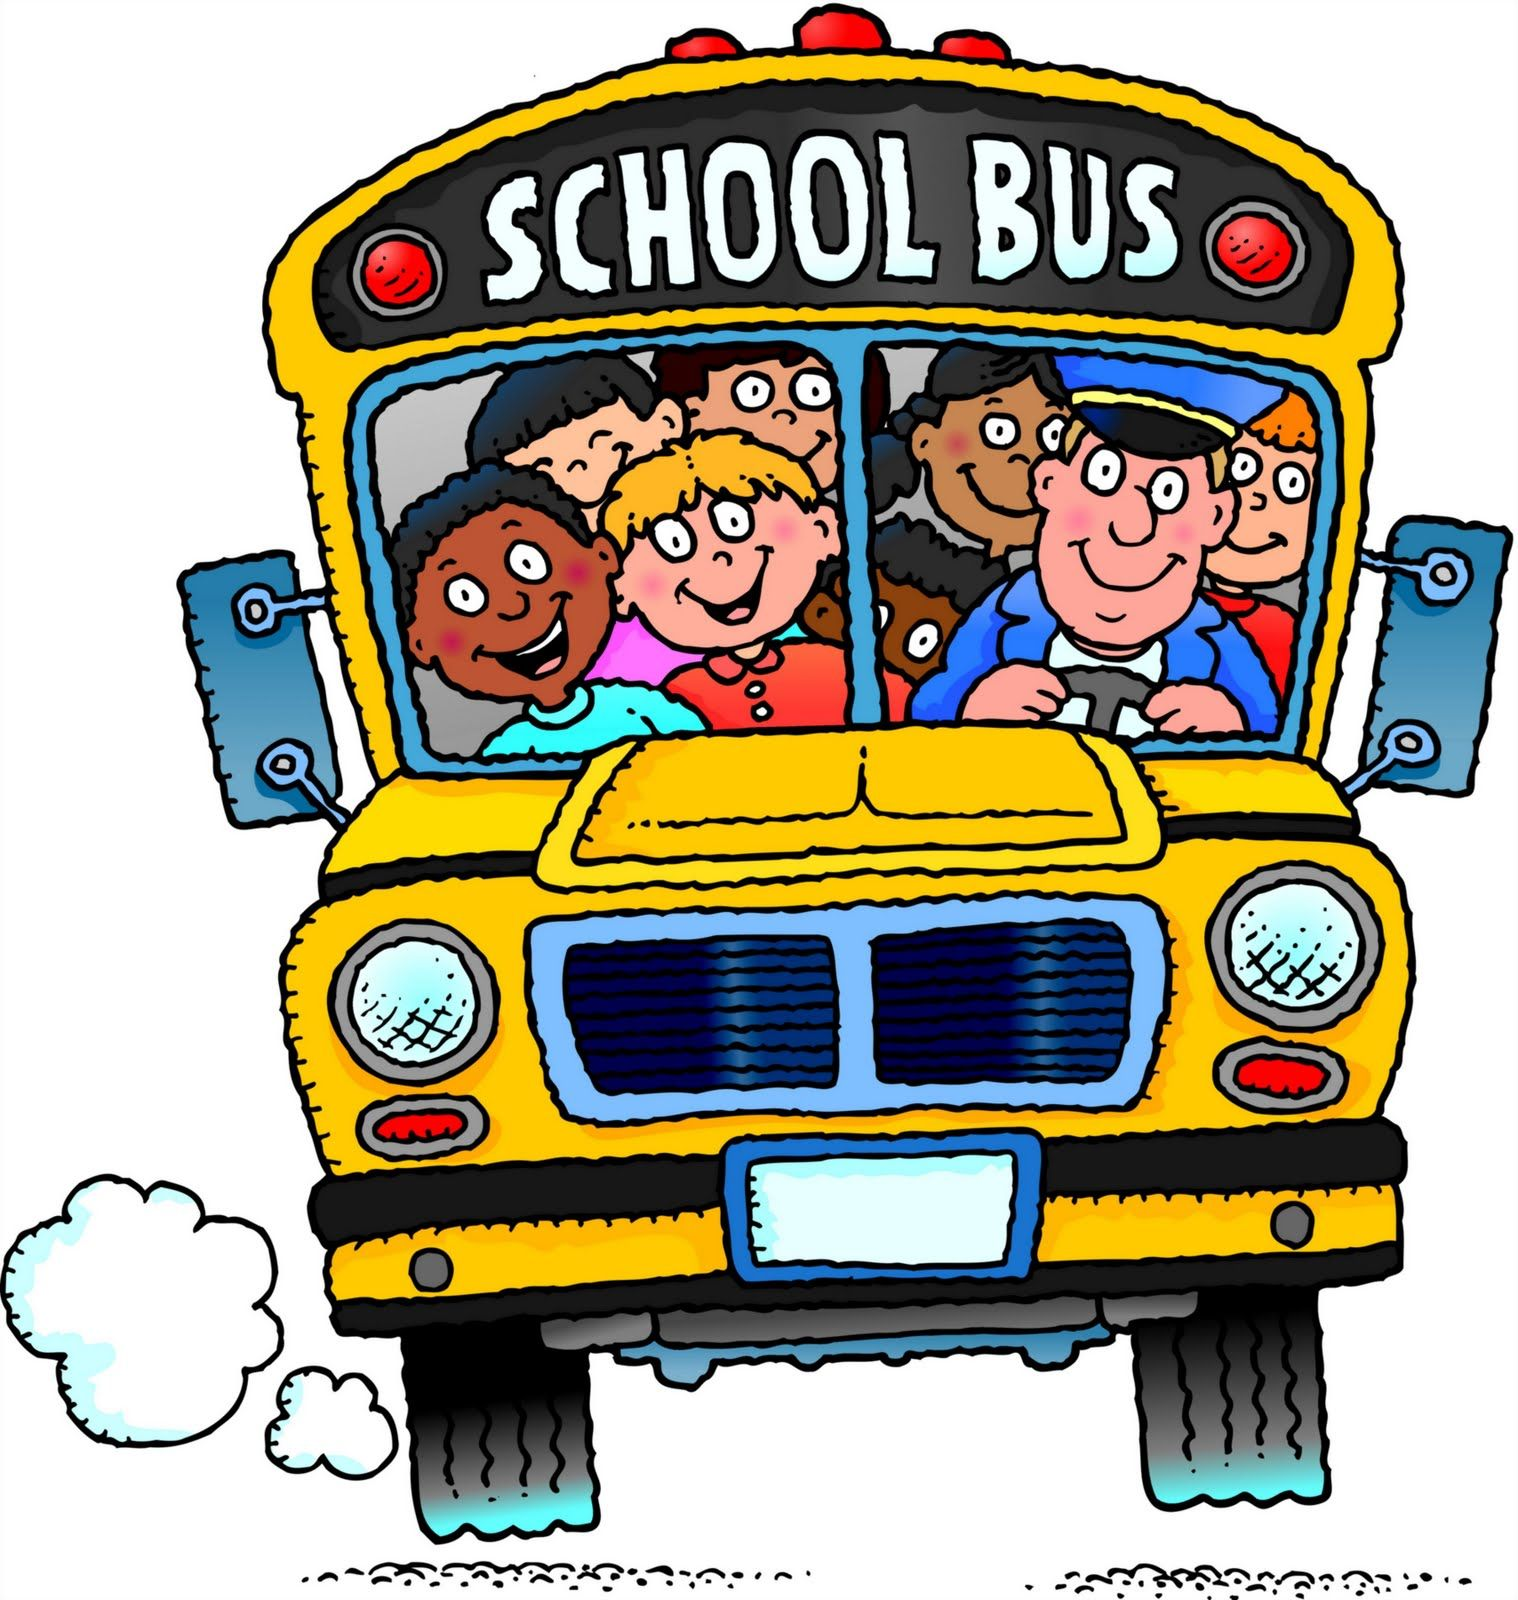 Free school bus clipart 7 5 Site has many school bus images.